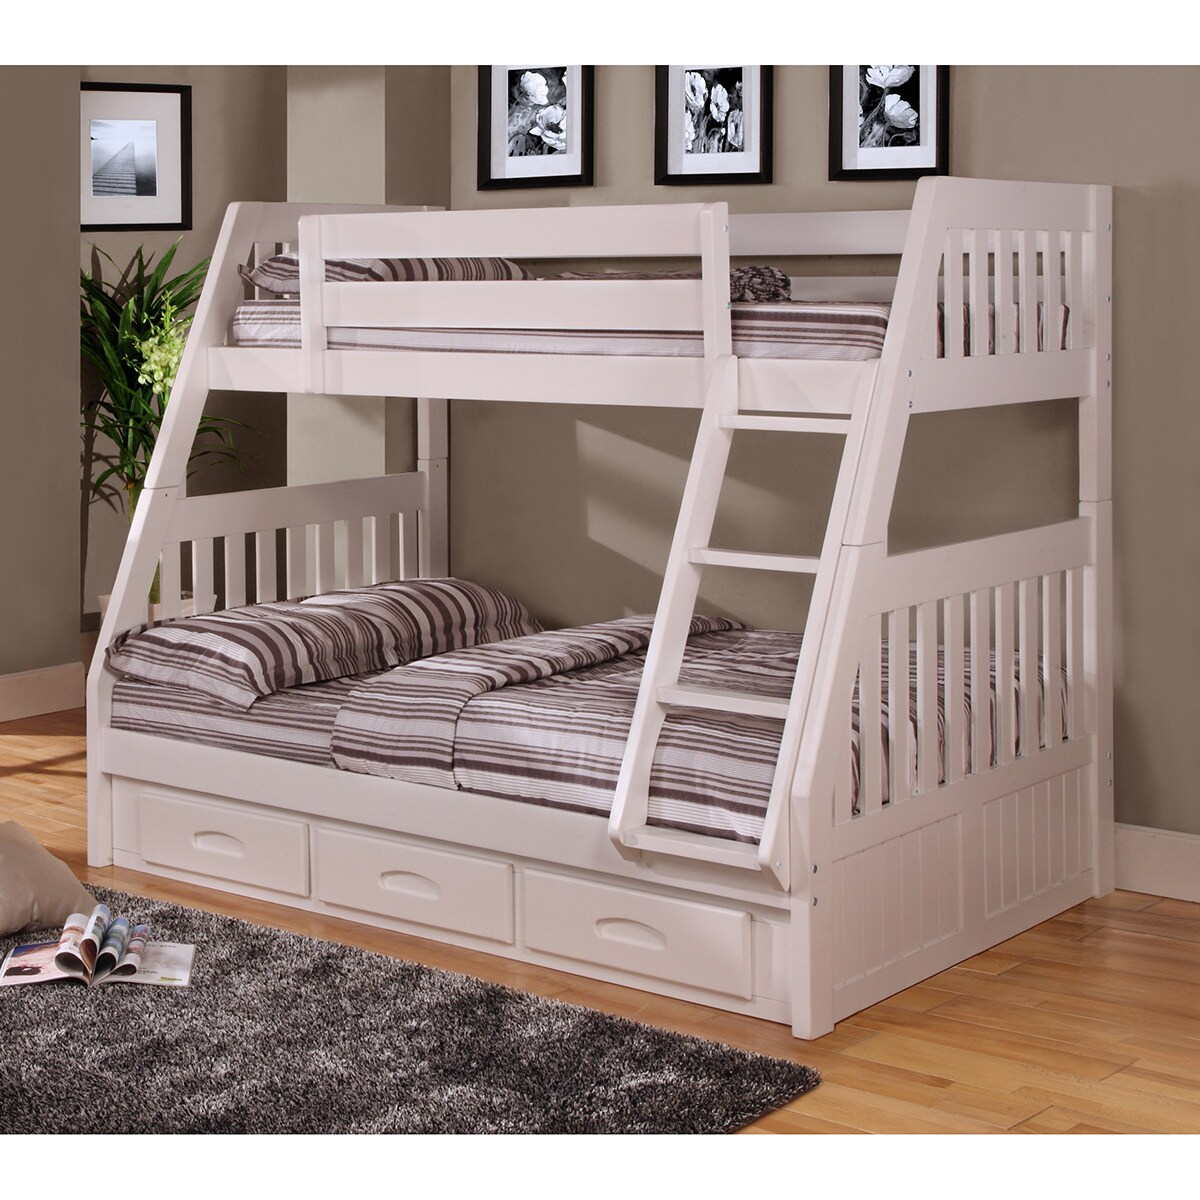 twin over full bunk bed with 3 drawers underneath and bonus desk hutch and chair